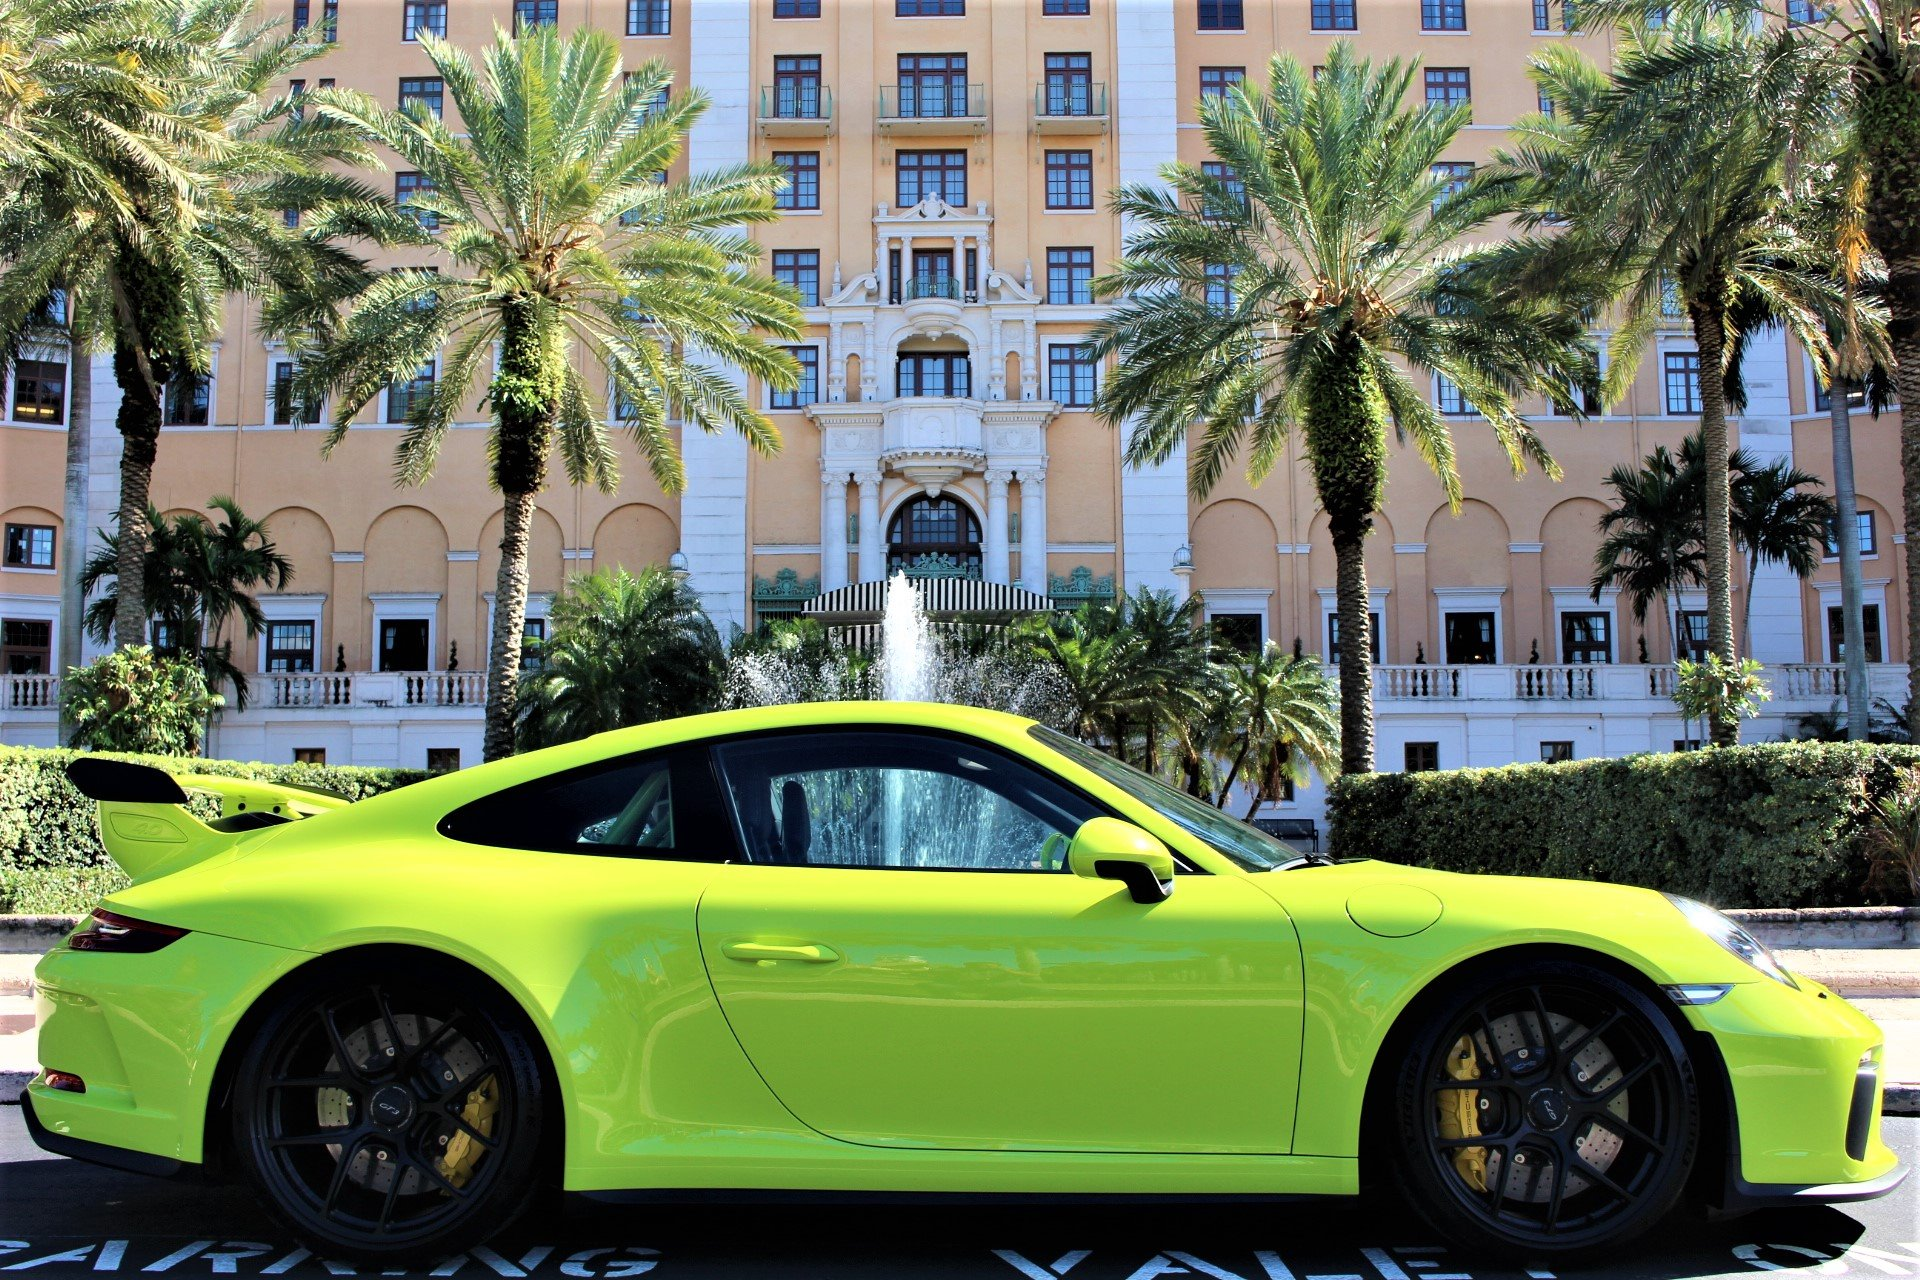 Used 2018 Porsche 911 GT3 for sale $169,850 at The Gables Sports Cars in Miami FL 33146 1